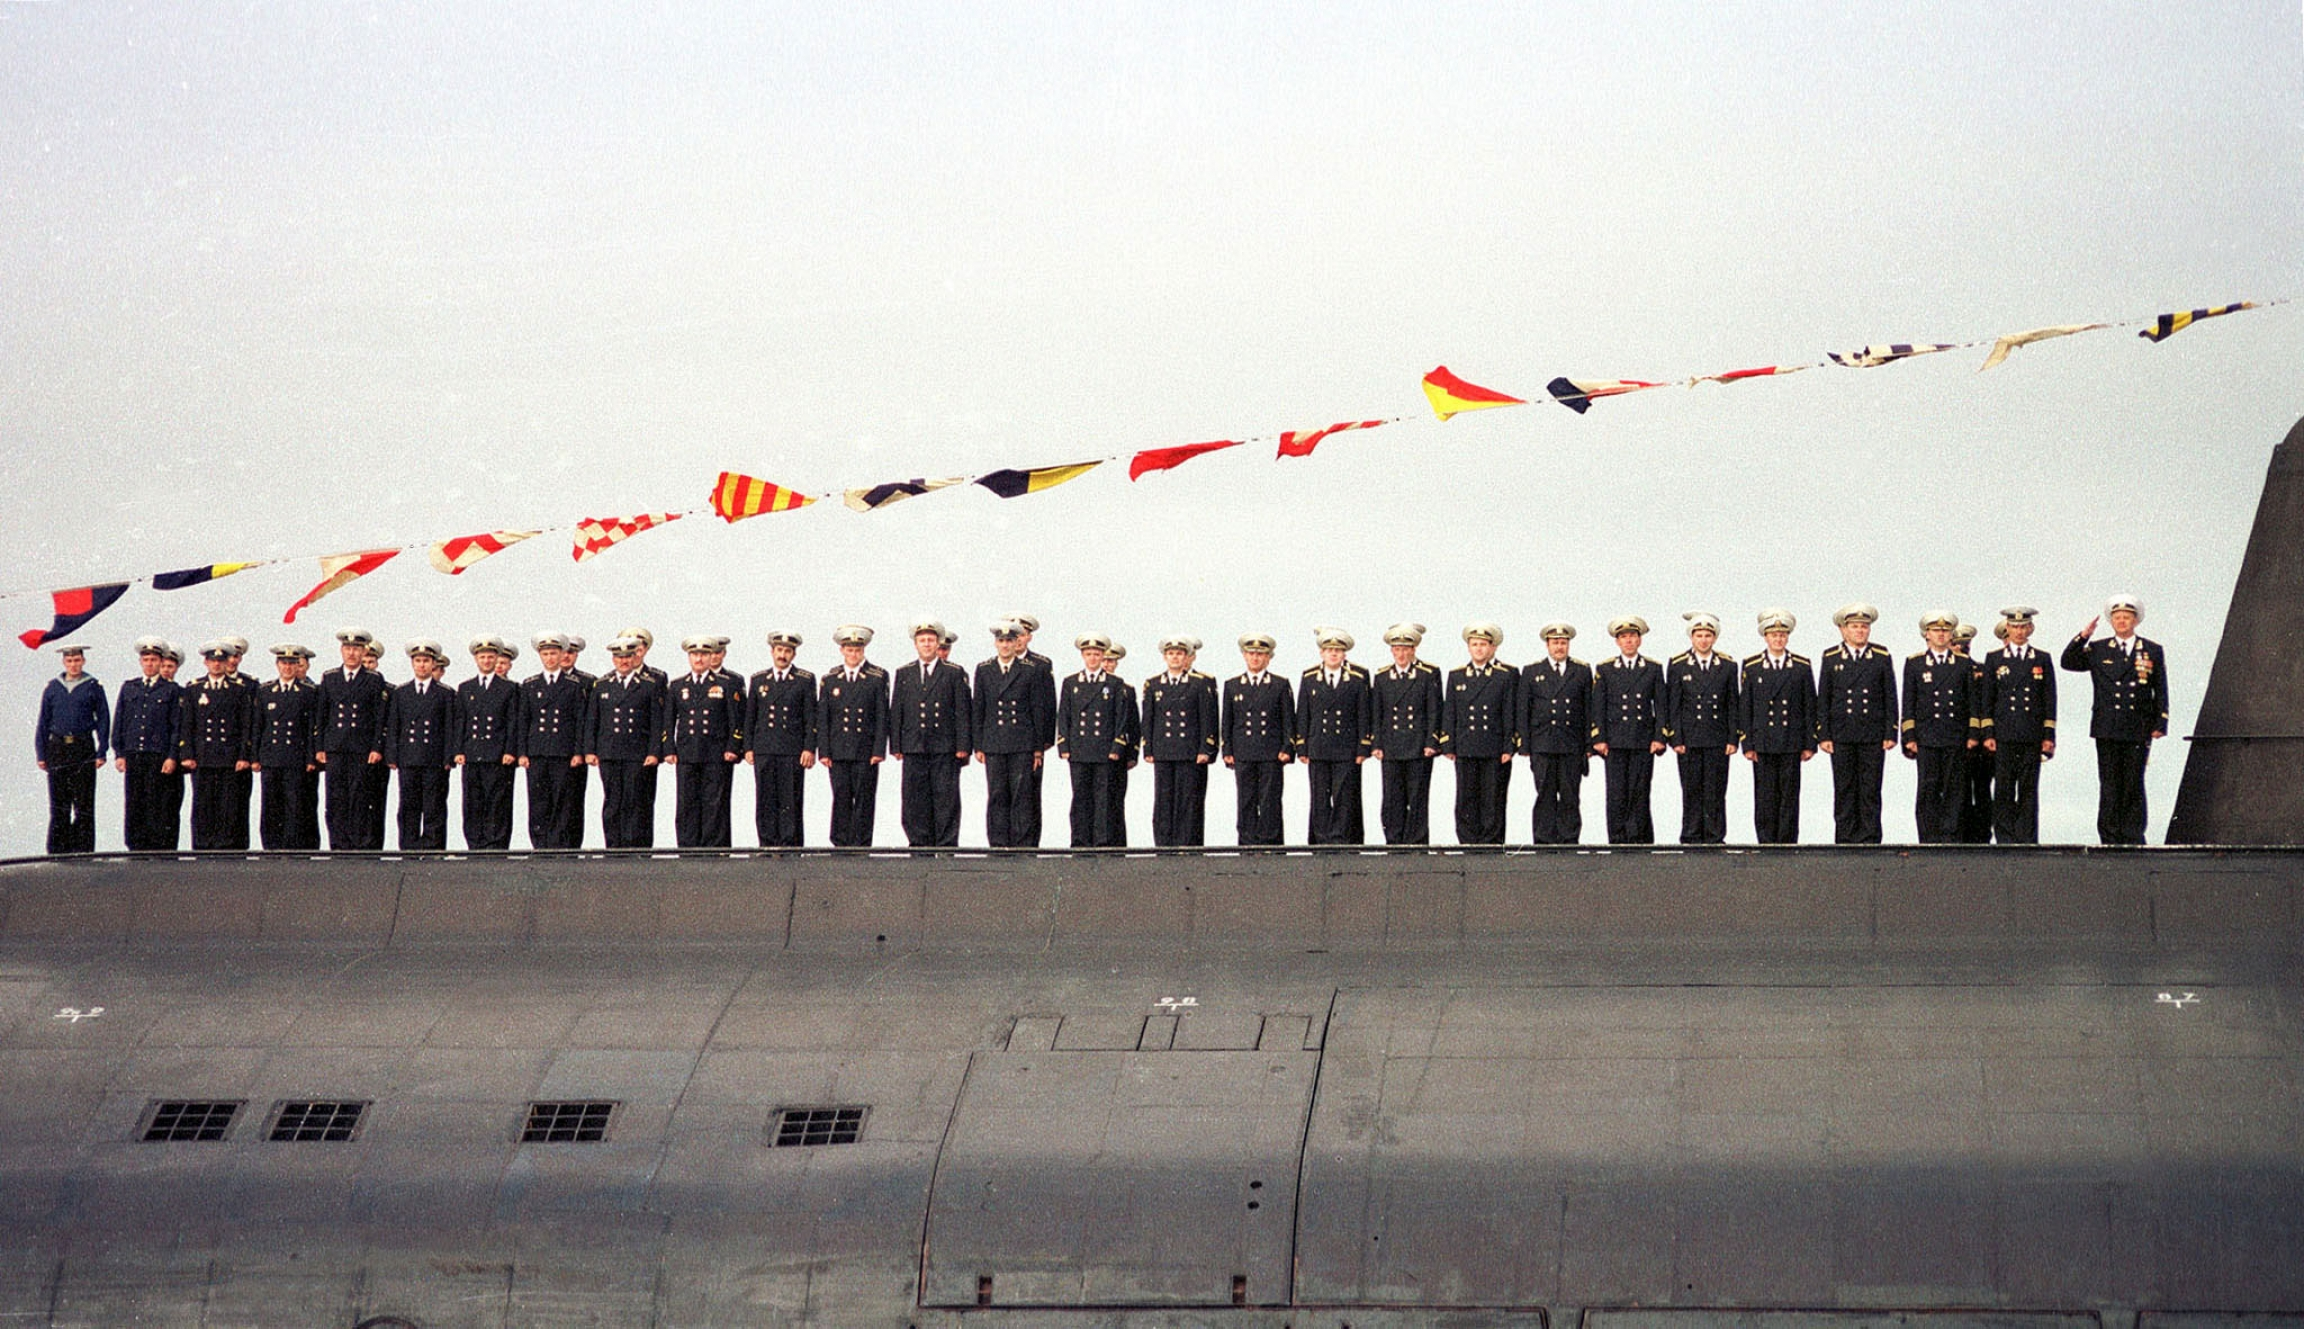 Sailors stand in a line atop their submarine in uniform